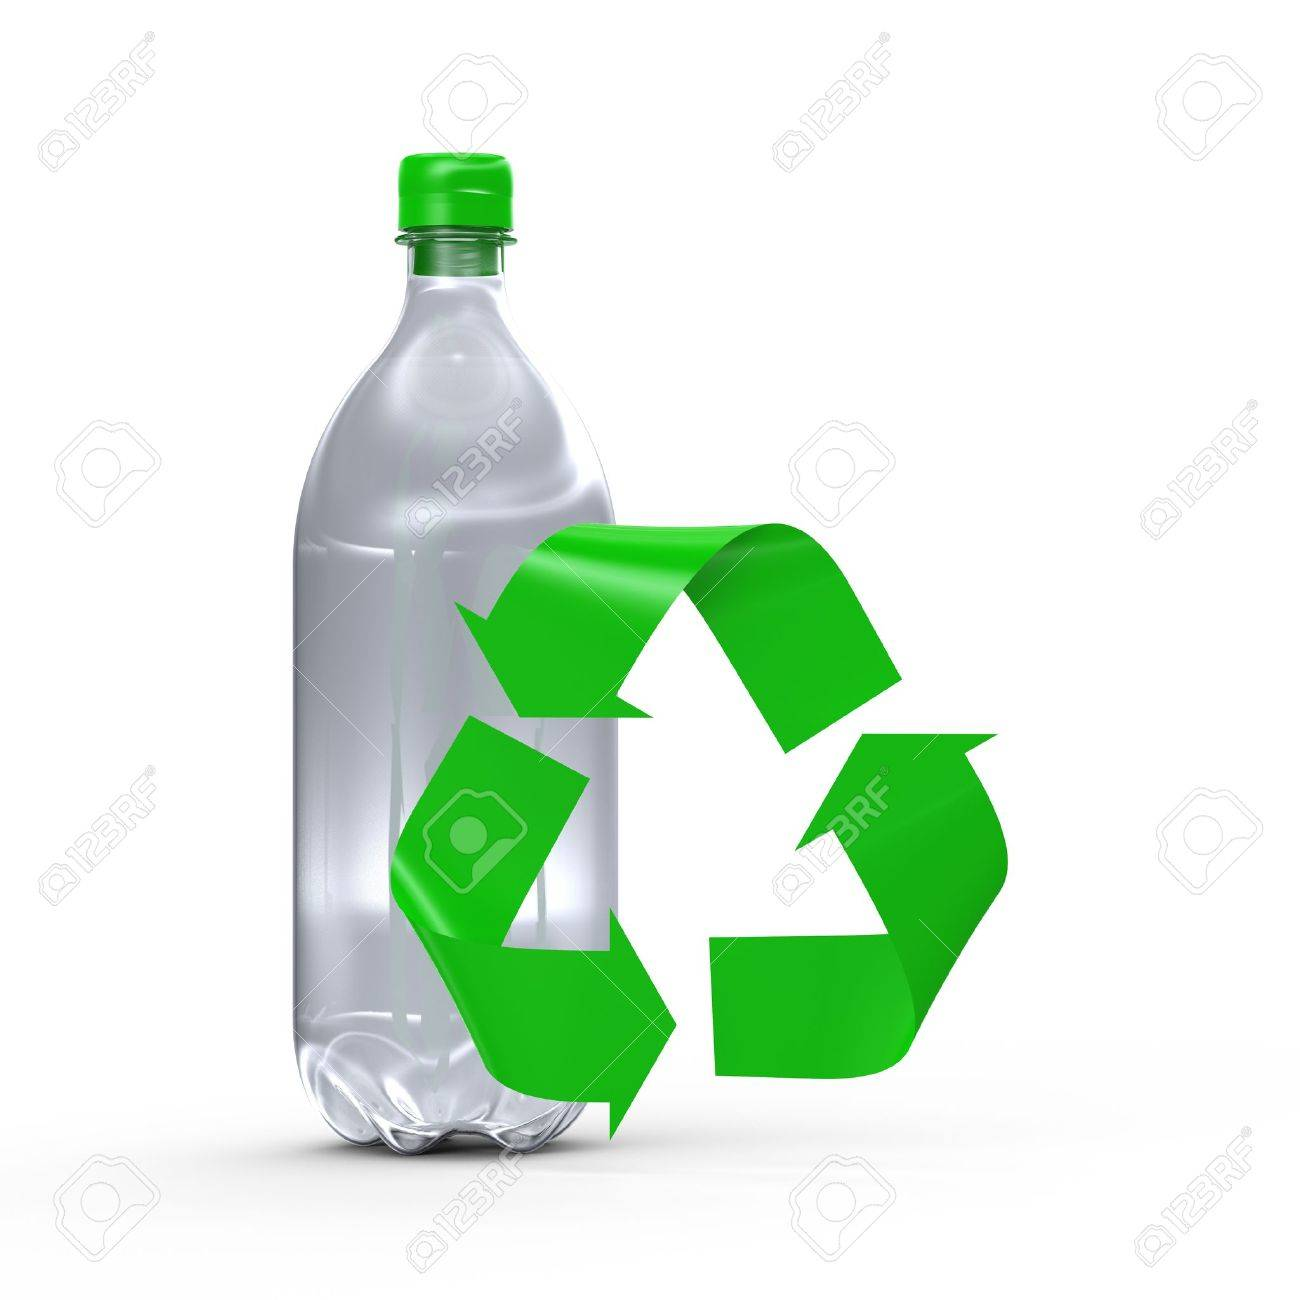 Plastic Bottle Recycling 3412 Plastic Bottles Recycling Stock Vector Illustration And